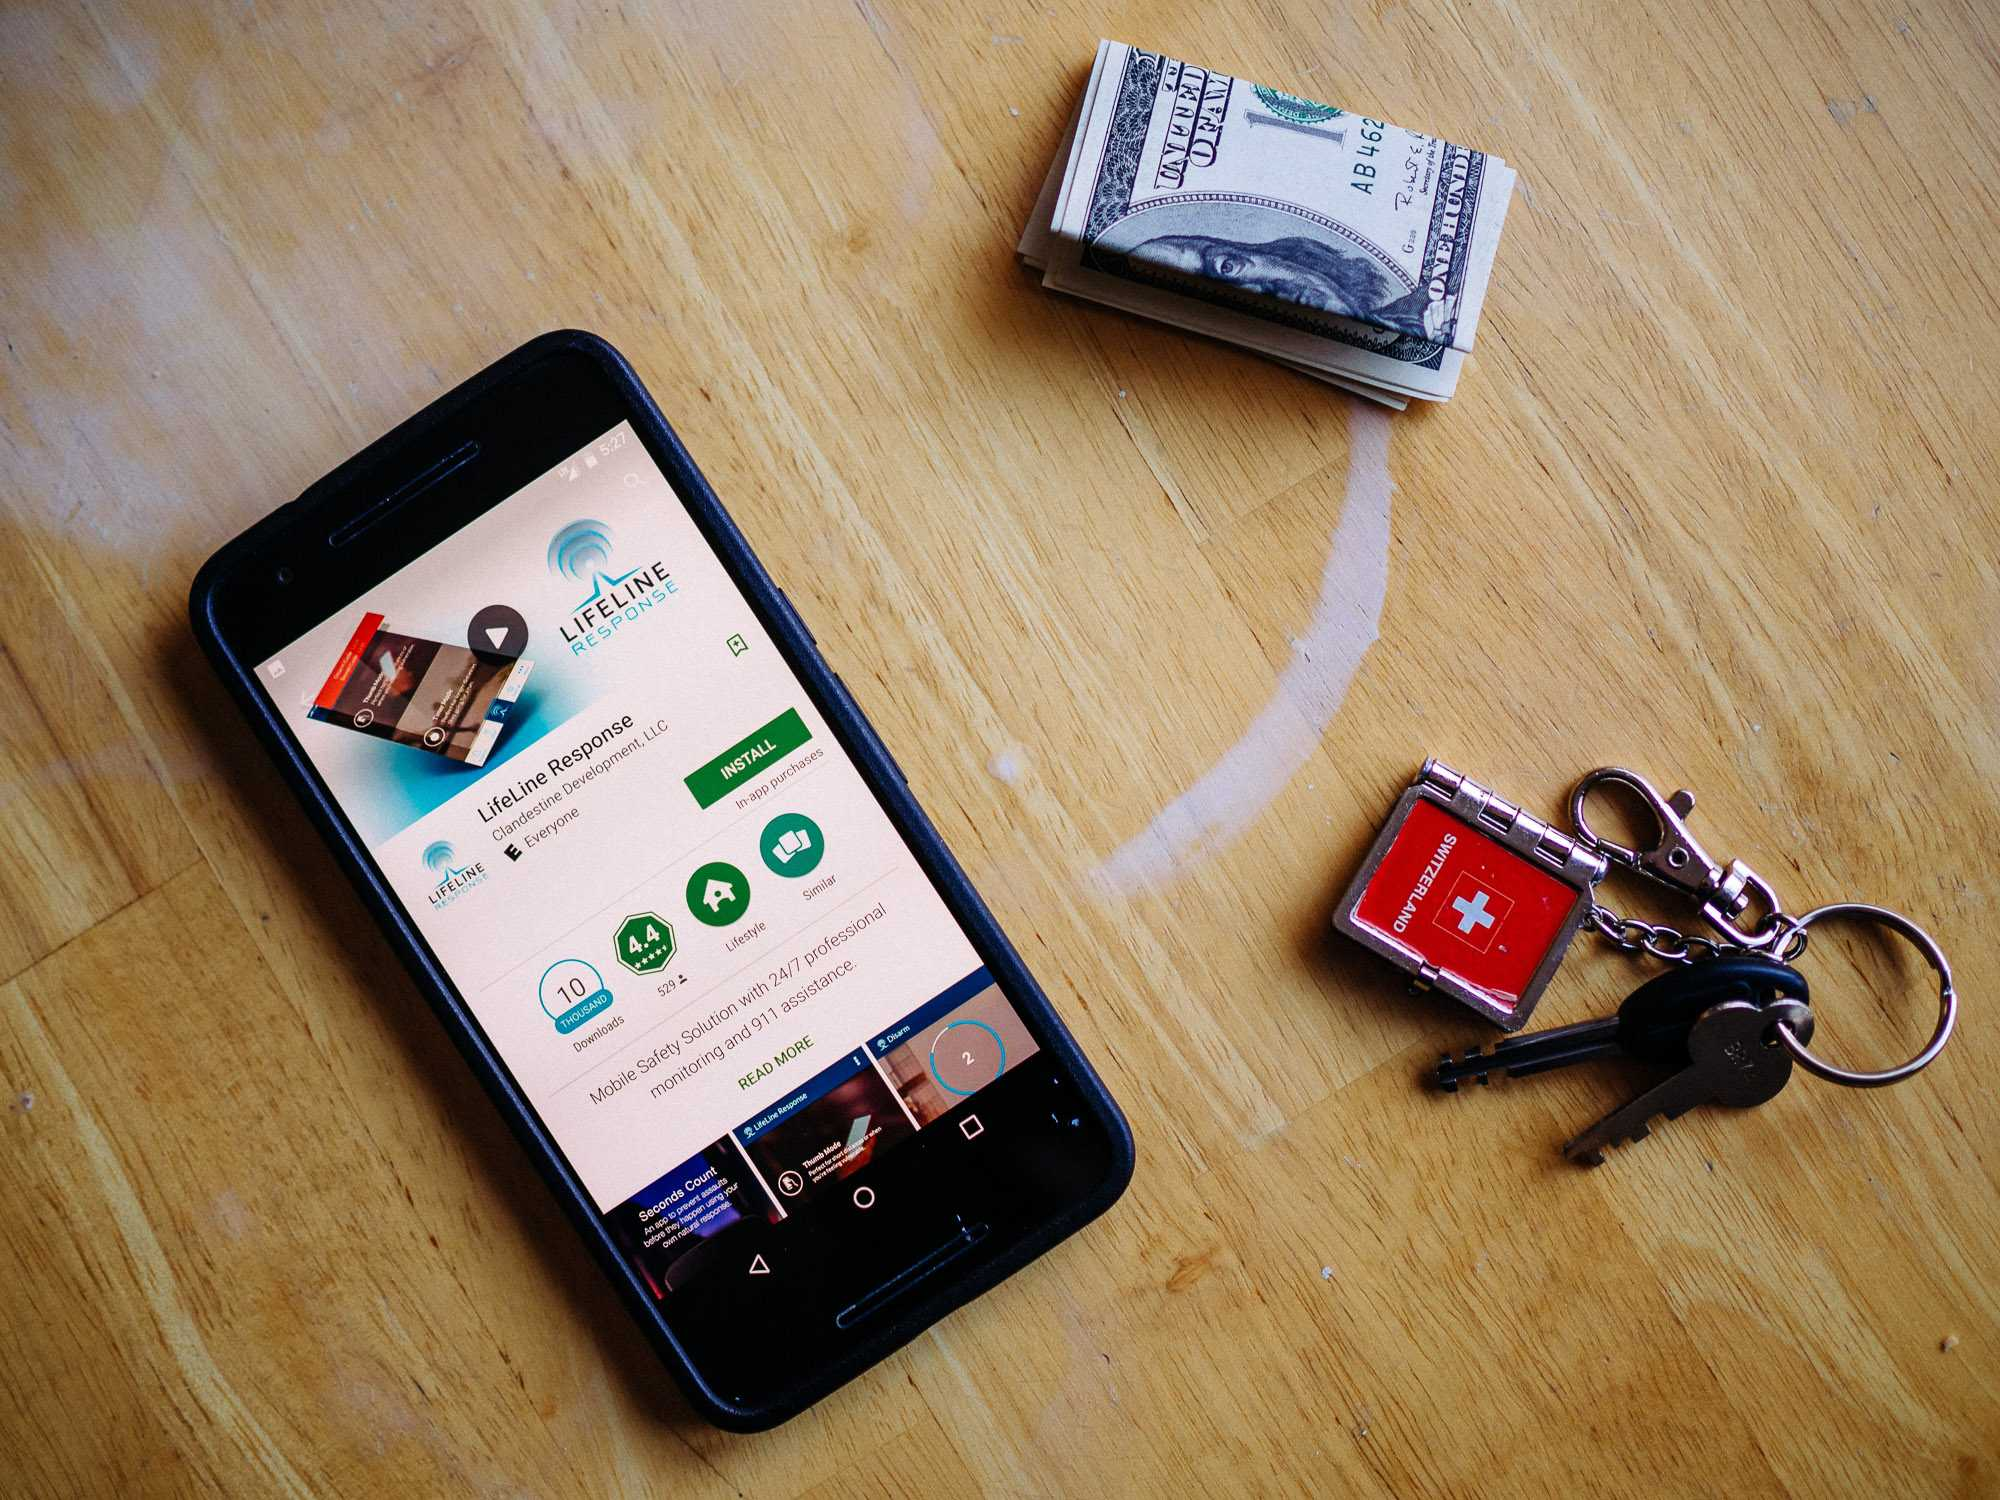 Lifeline mobile safety solution app in Google Play Store.